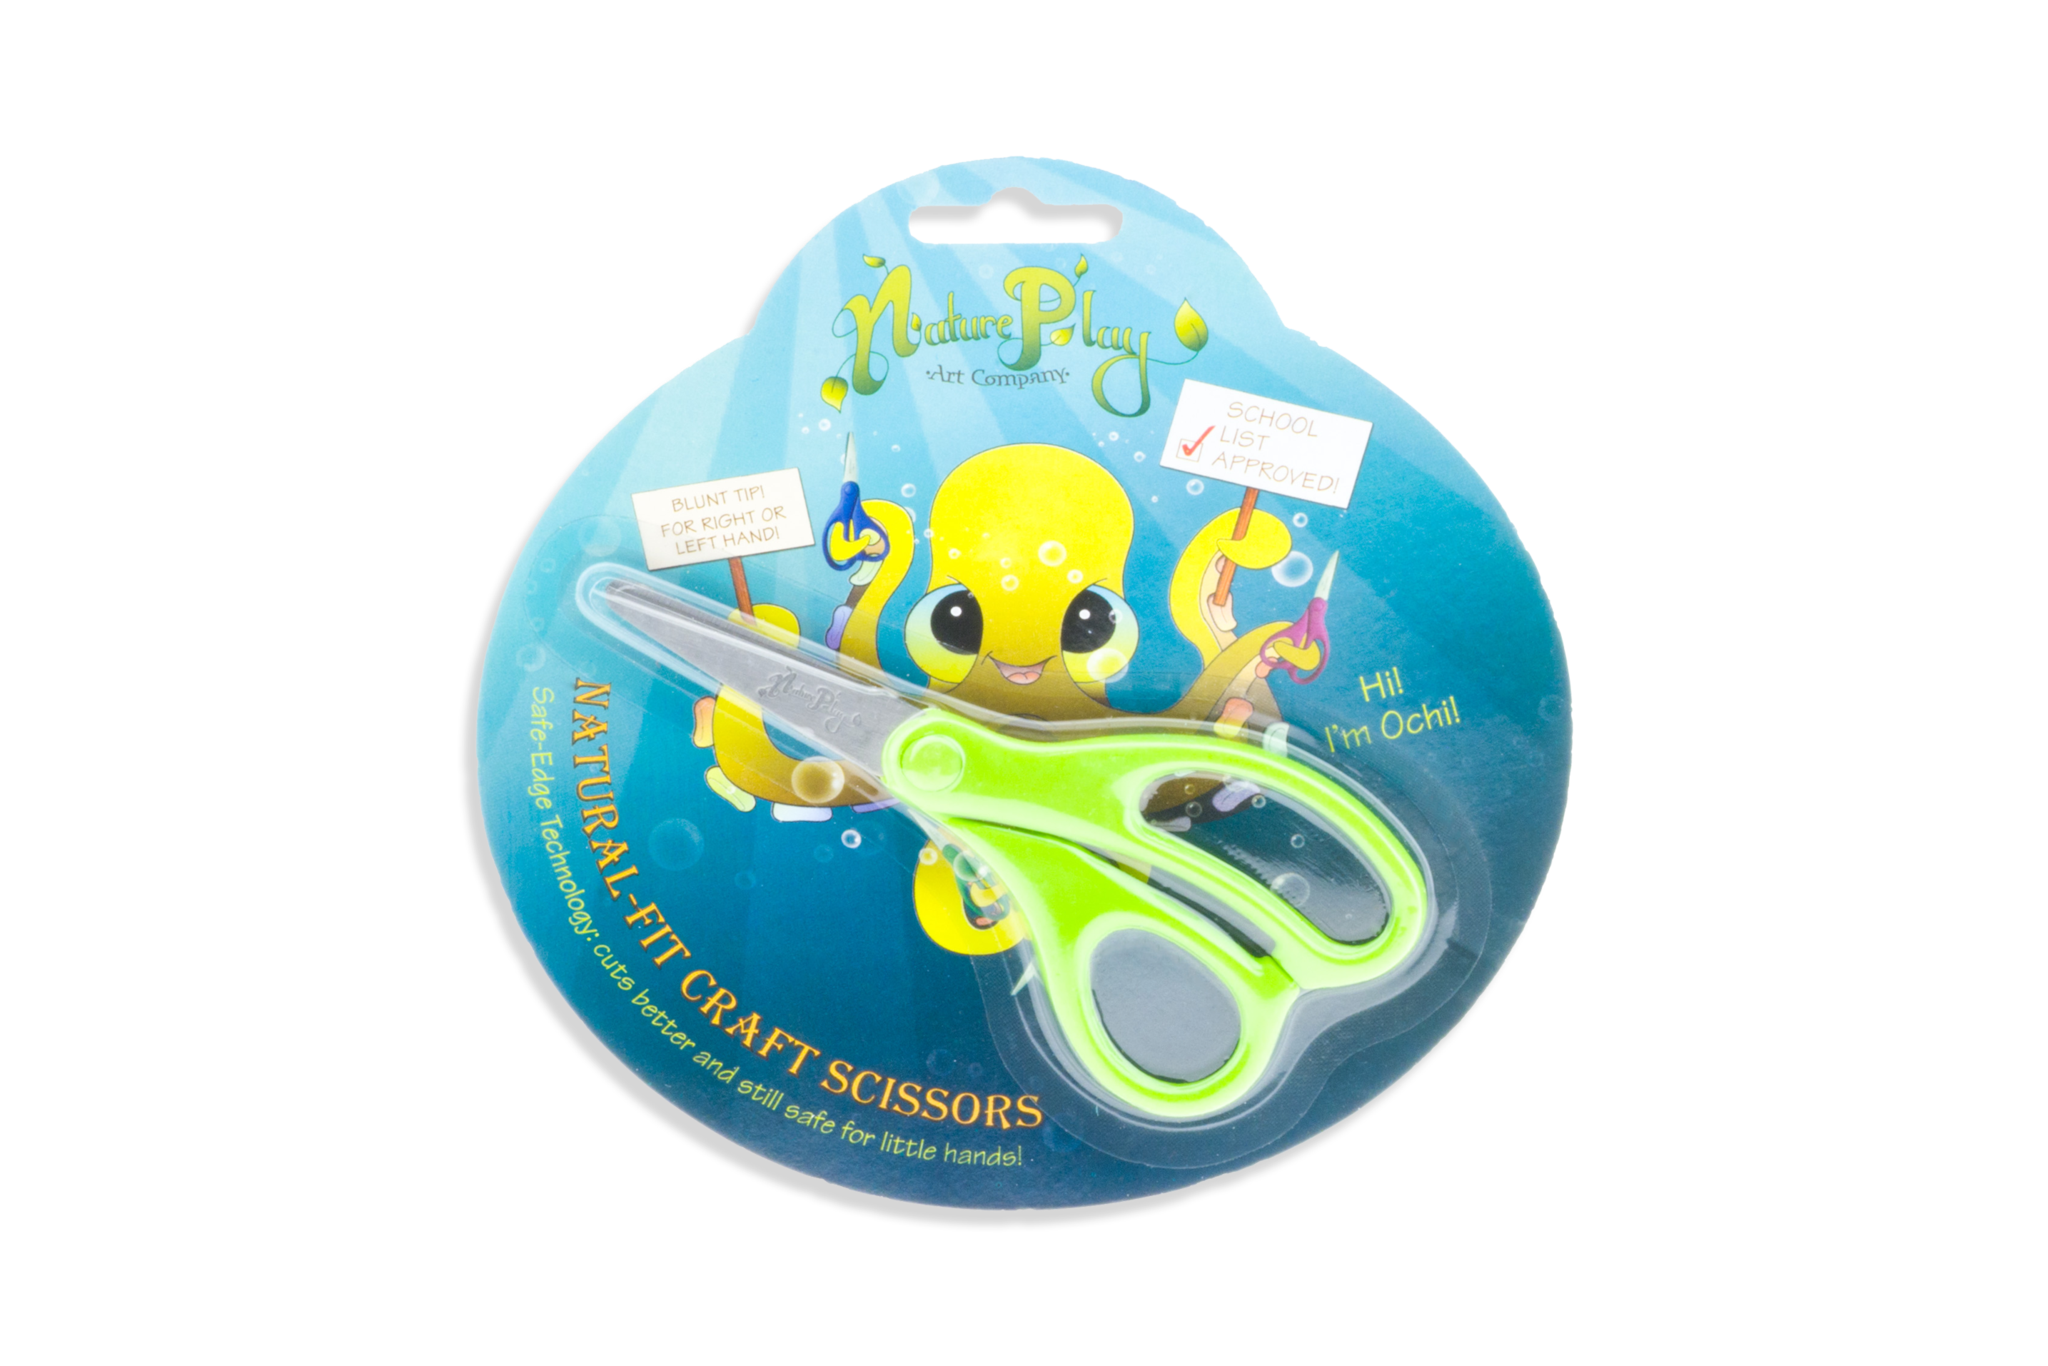 Natural-Fit Children's Scissors - 5